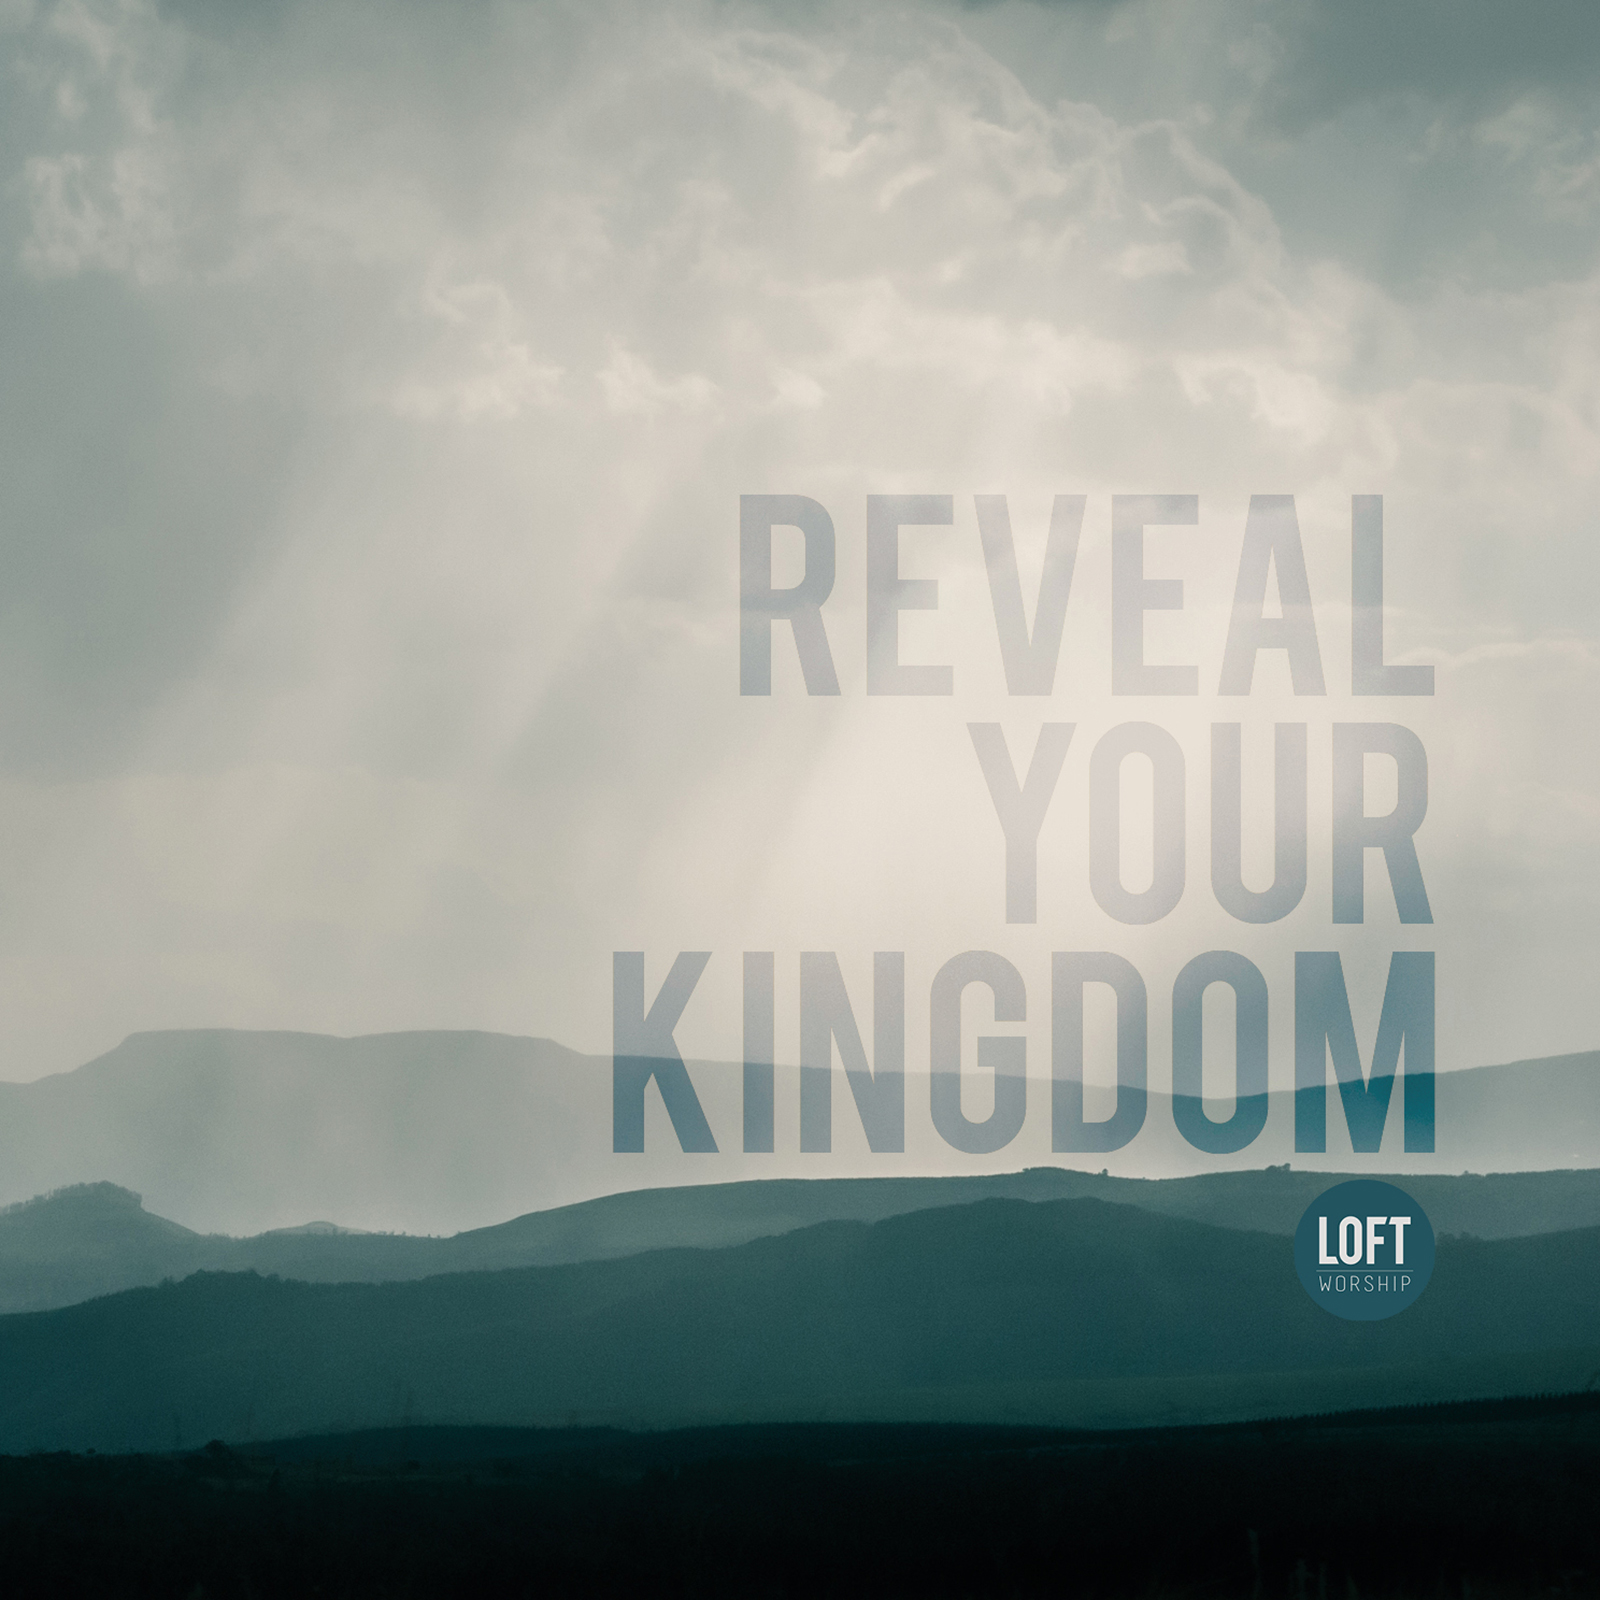 Cover Reveal Your Kingdom